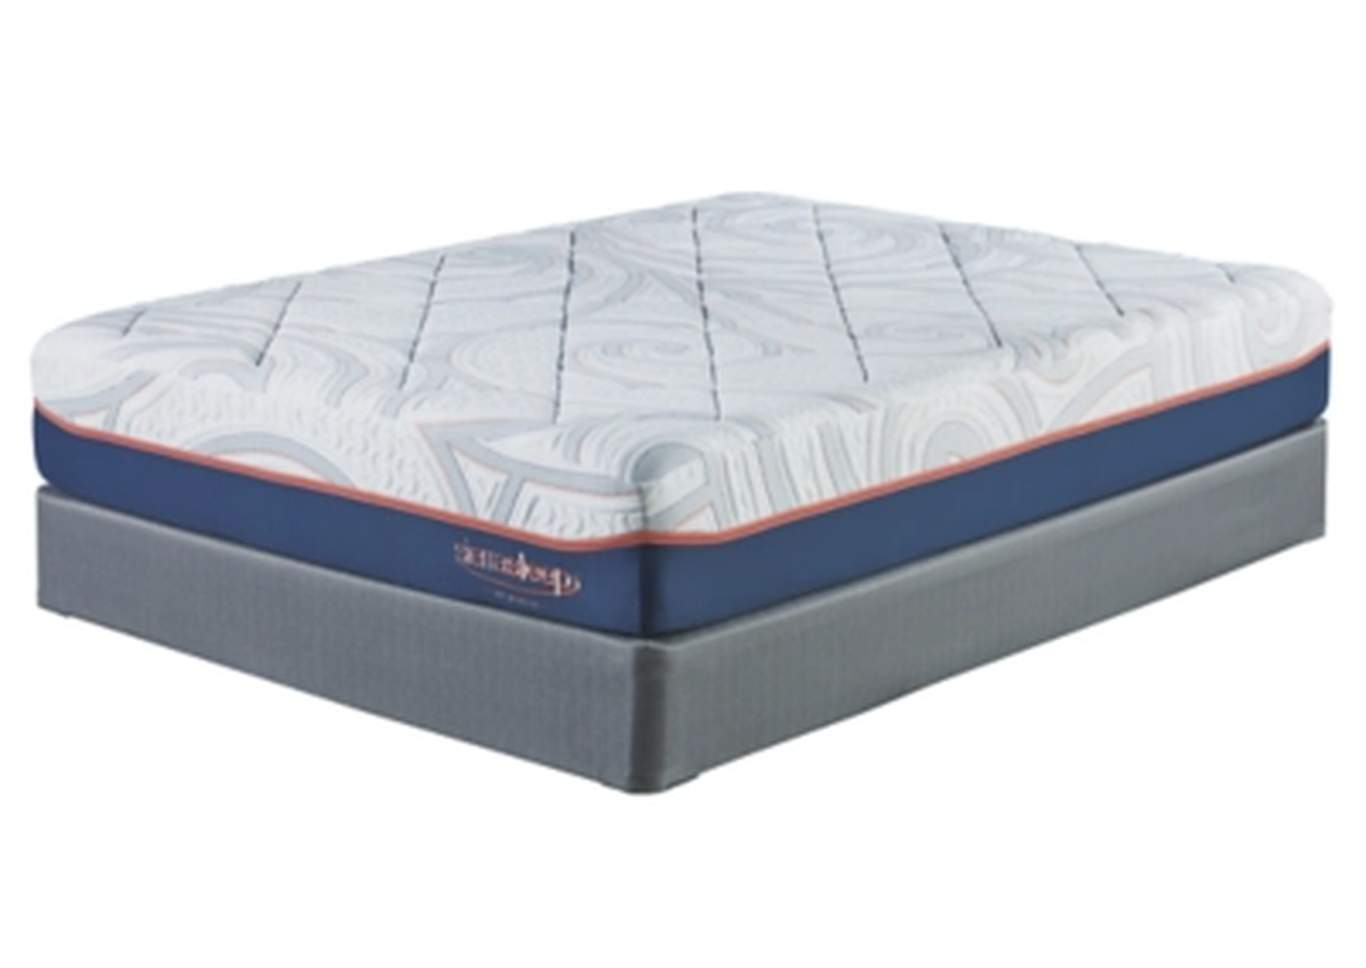 12 Inch MyGel White Full Mattress w/Foundation,Sierra Sleep by Ashley